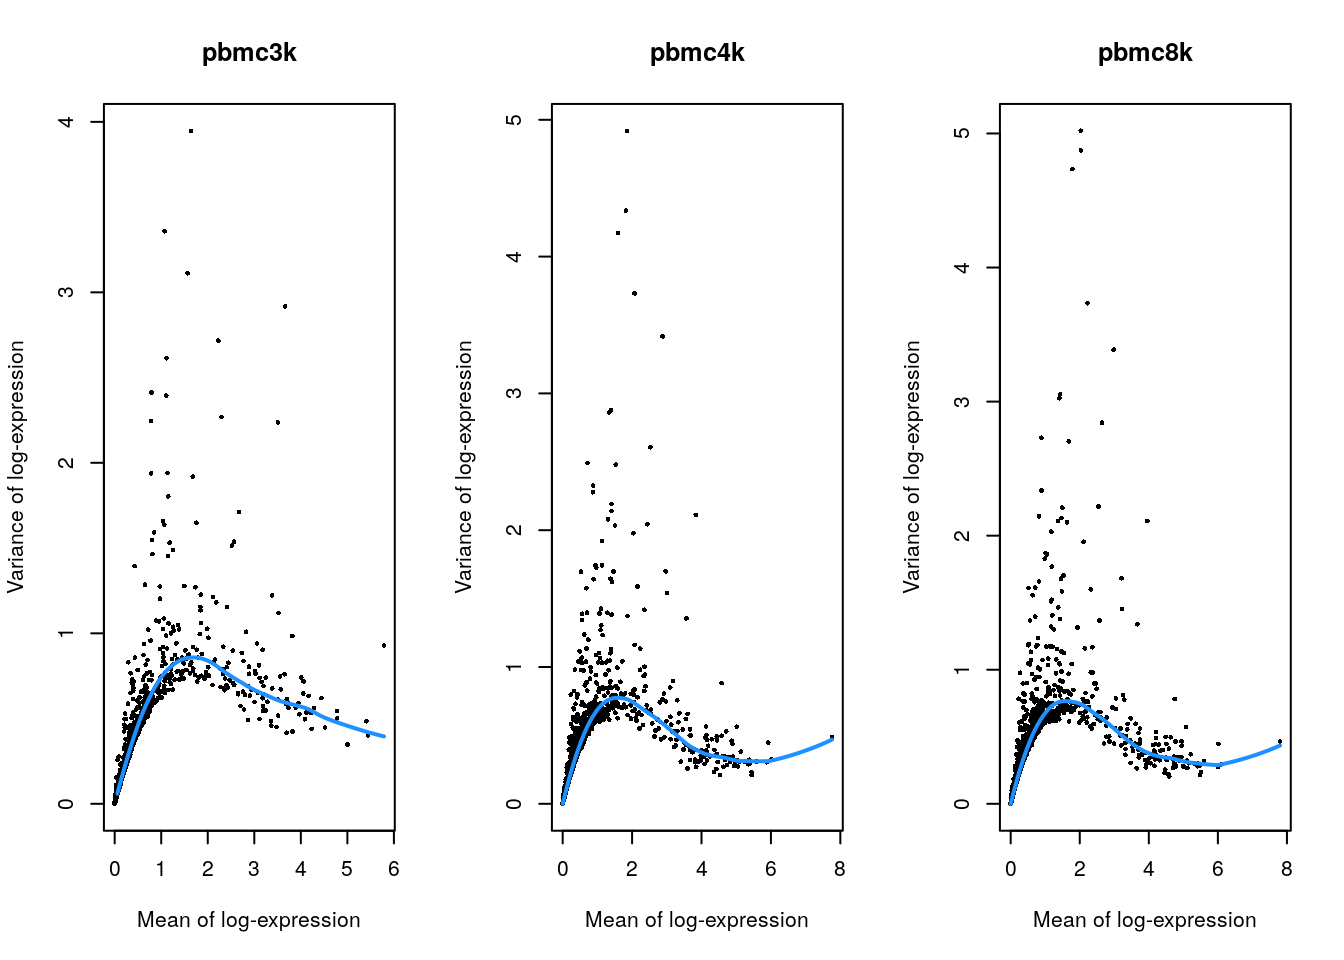 Per-gene variance as a function of the mean for the log-expression values in each PBMC dataset. Each point represents a gene (black) with the mean-variance trend (blue) fitted to the variances.